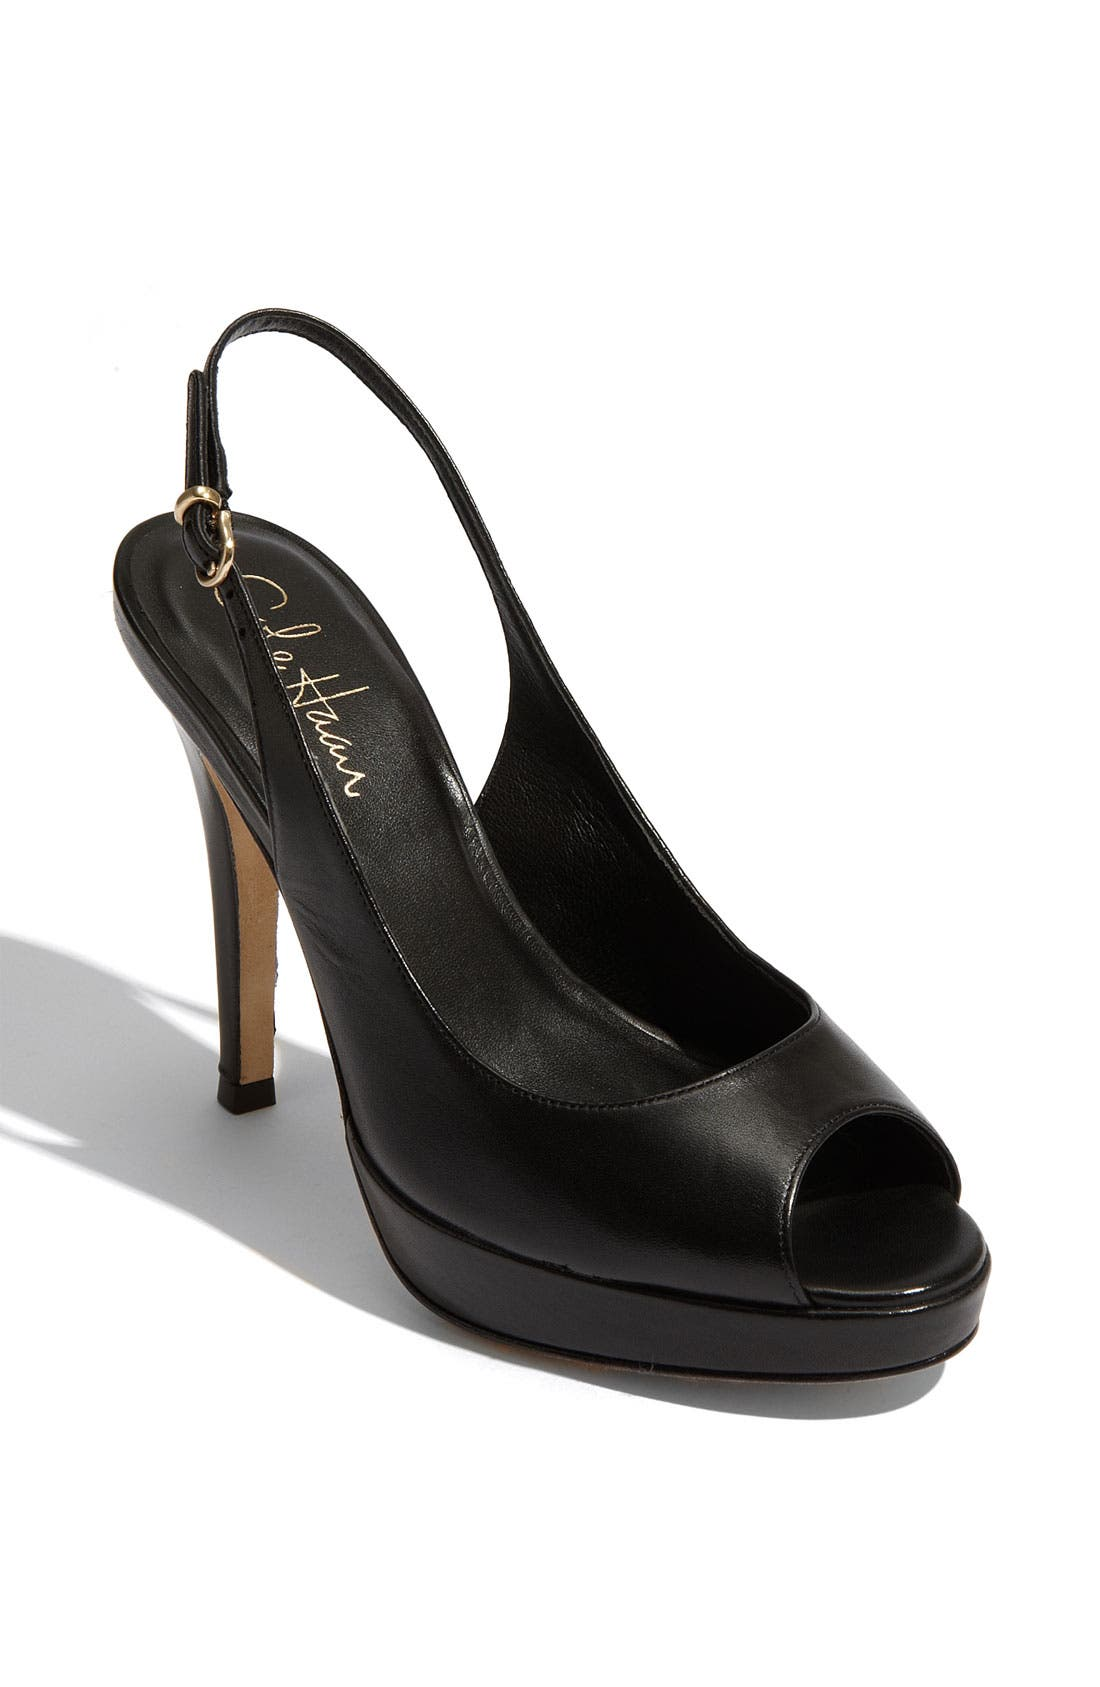 Main Image - Cole Haan 'Air Stephanie' Slingback Pump